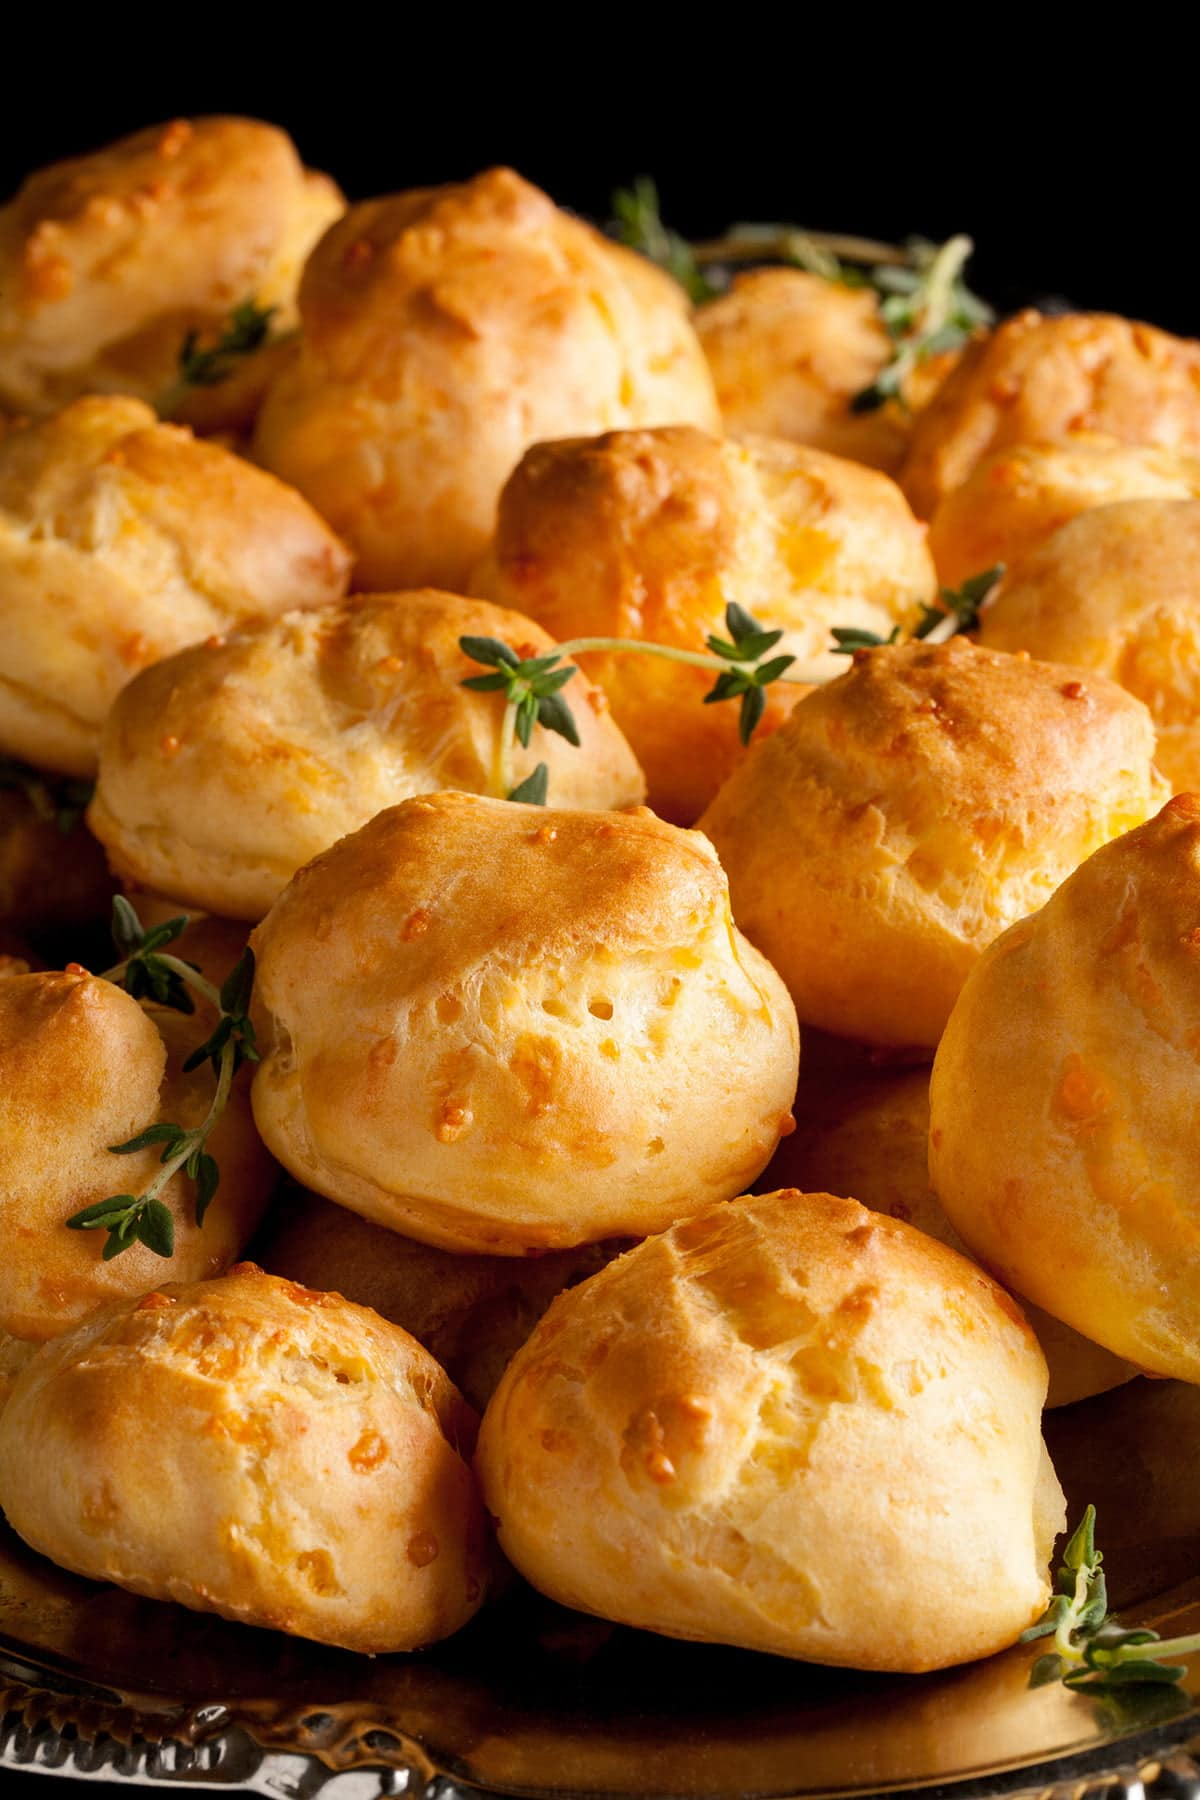 Close up view of a plate of gluten-free gougères - cheese puffs